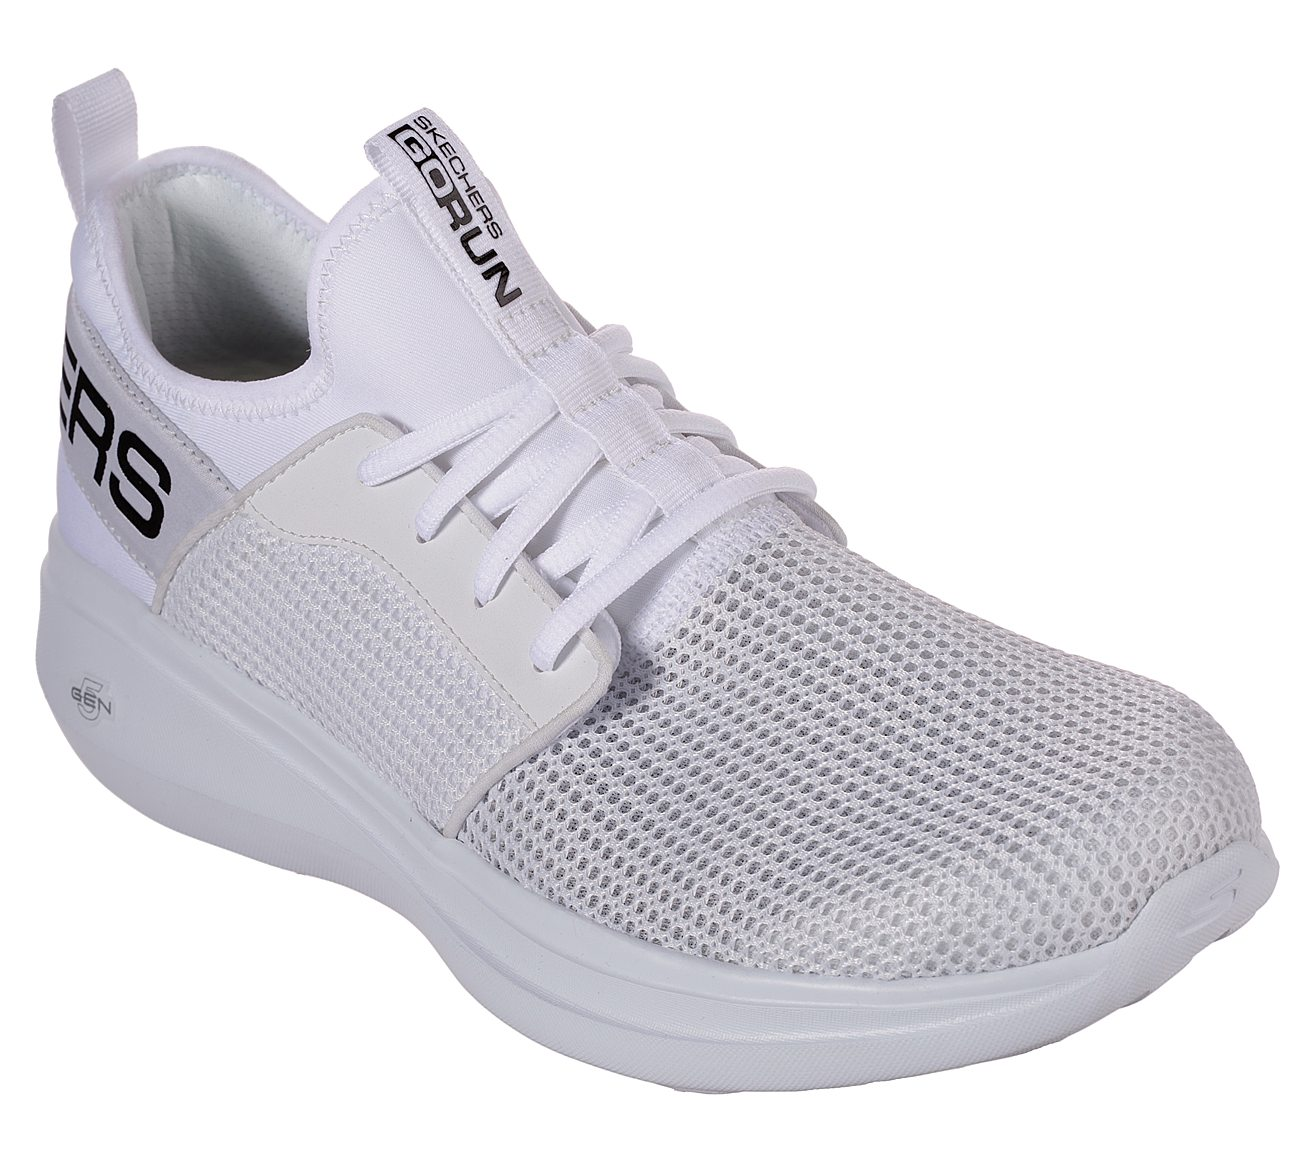 da4e6bb09f91 Buy SKECHERS Skechers GOrun Fast - Valor Running Shoes Shoes only  65.00